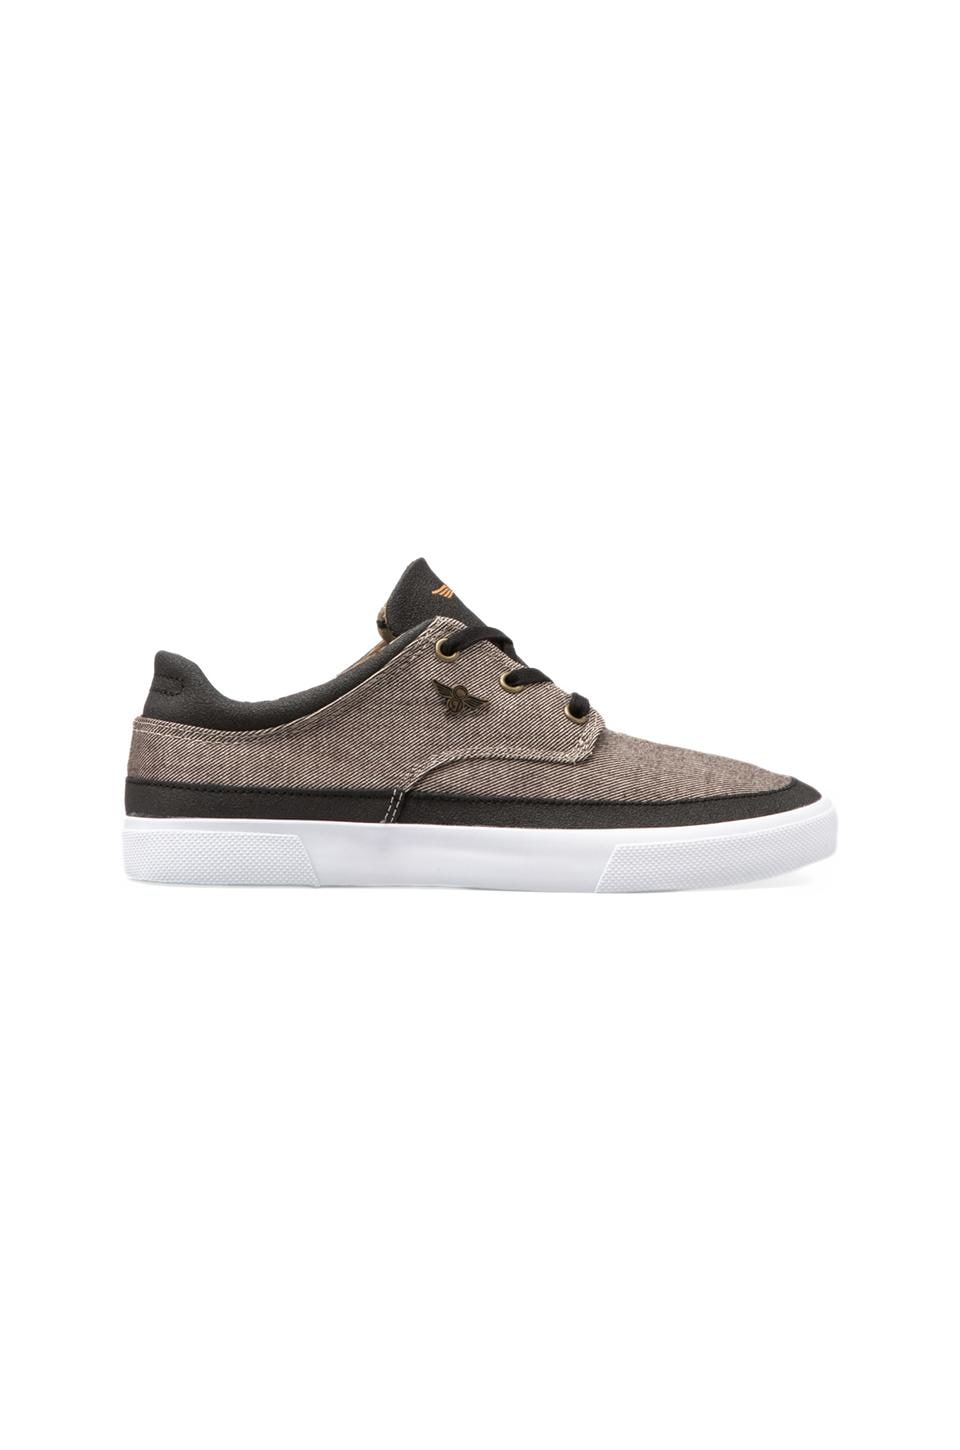 Creative Recreation Lazia in Brown/Camel